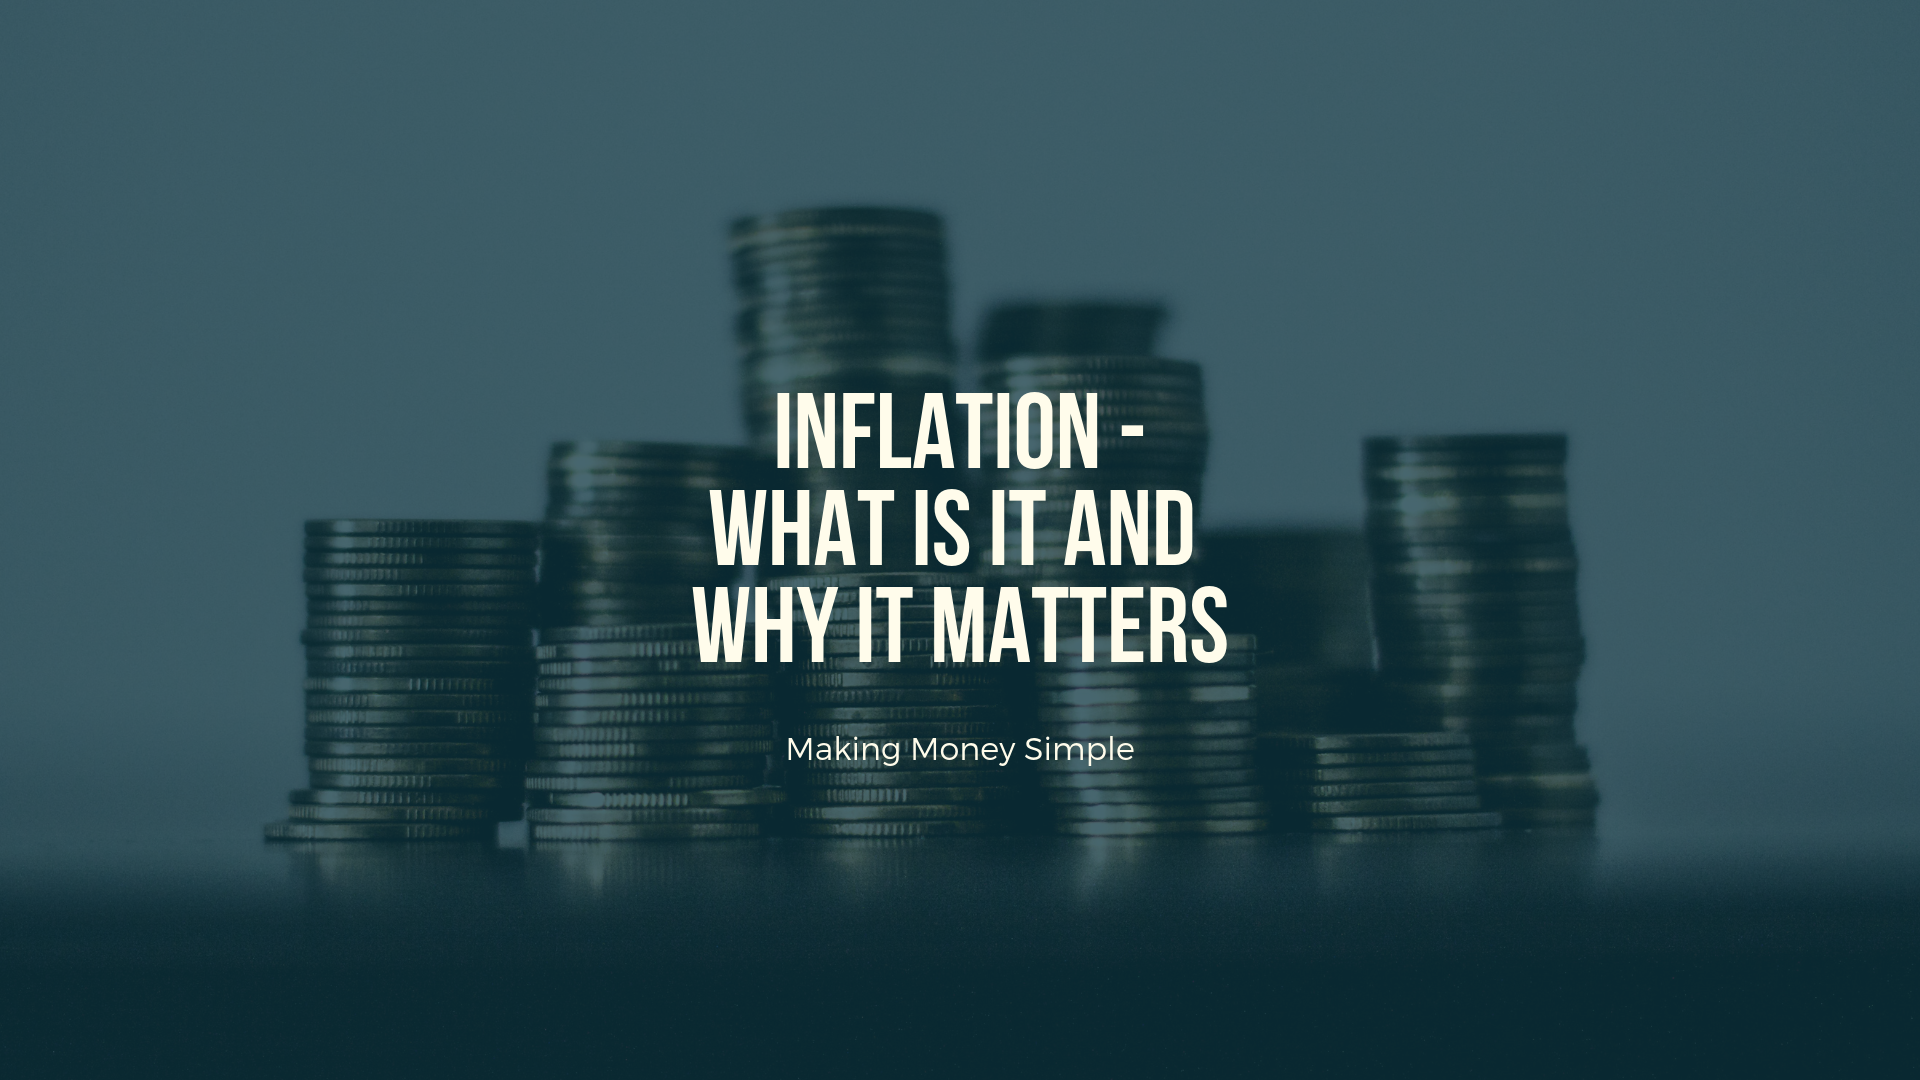 Inflation: What Is It and Why Does It Matter?